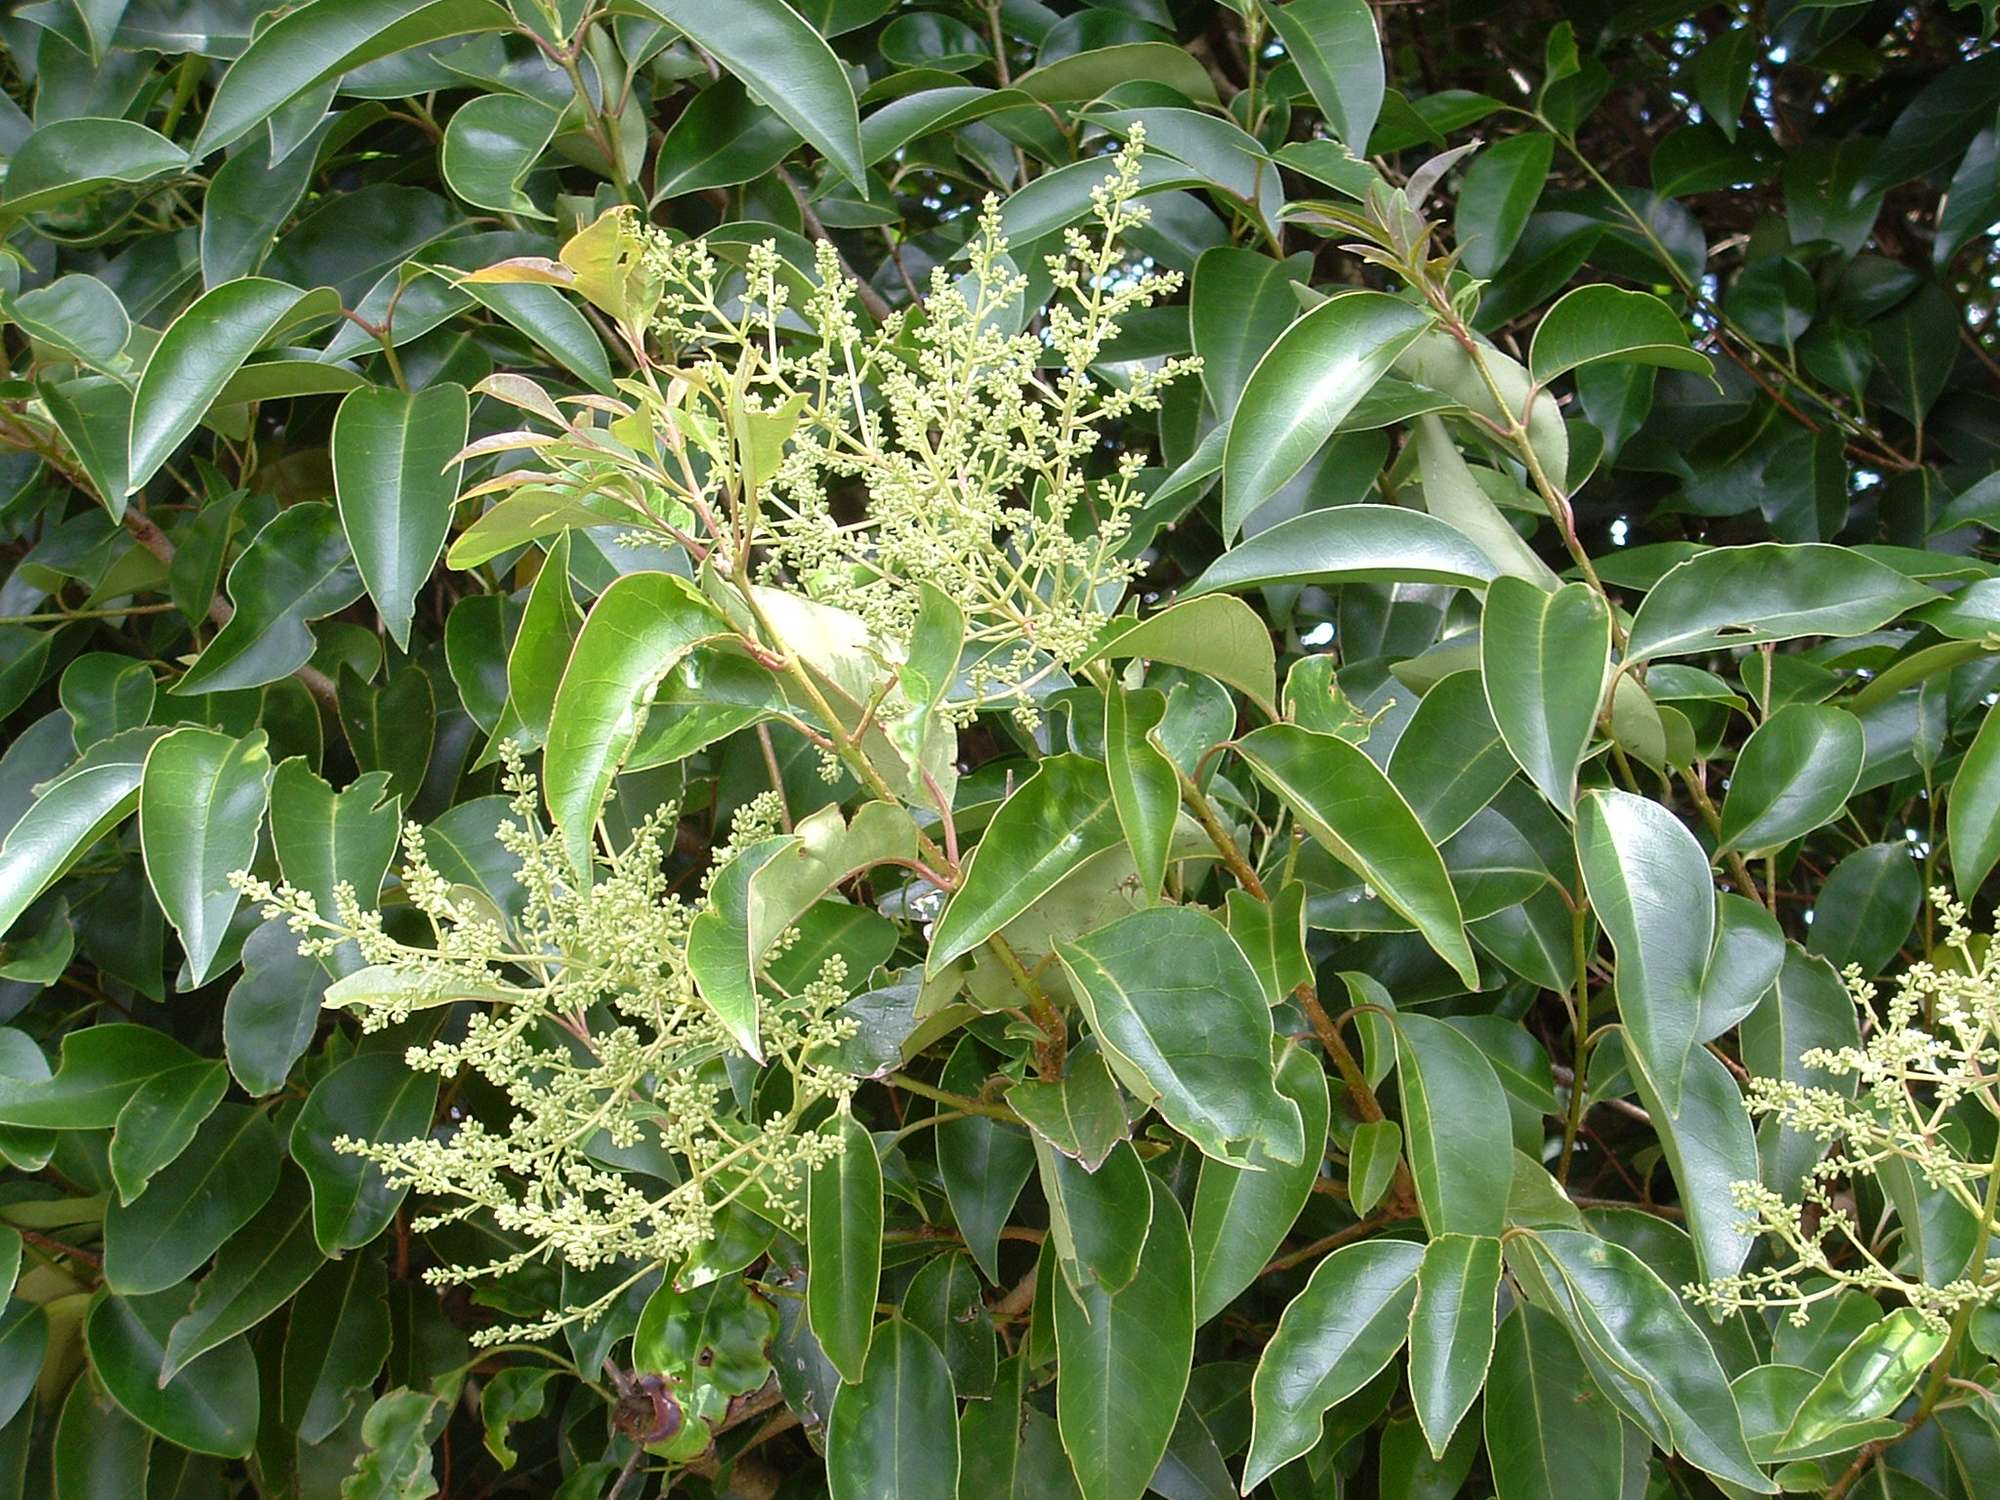 Ligustrum lucidum - Image courtesy of WeedBusters